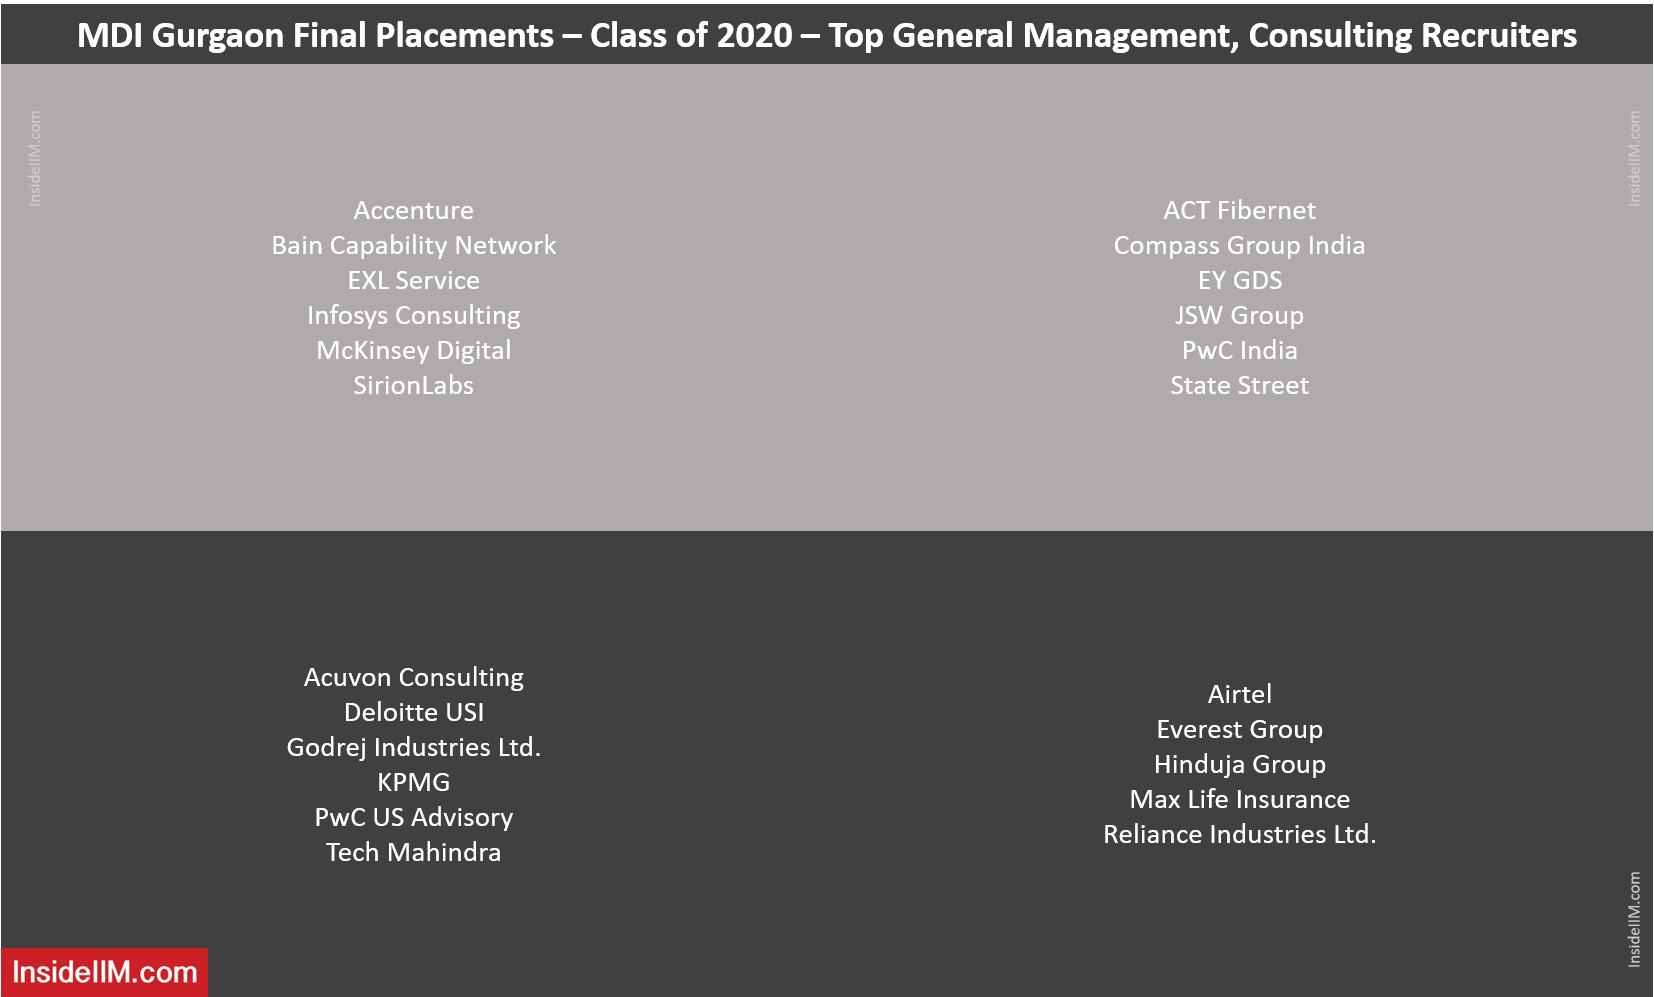 MDI Gurgaon Final Placements 2020 - Top Consulting, General Management Recruiters